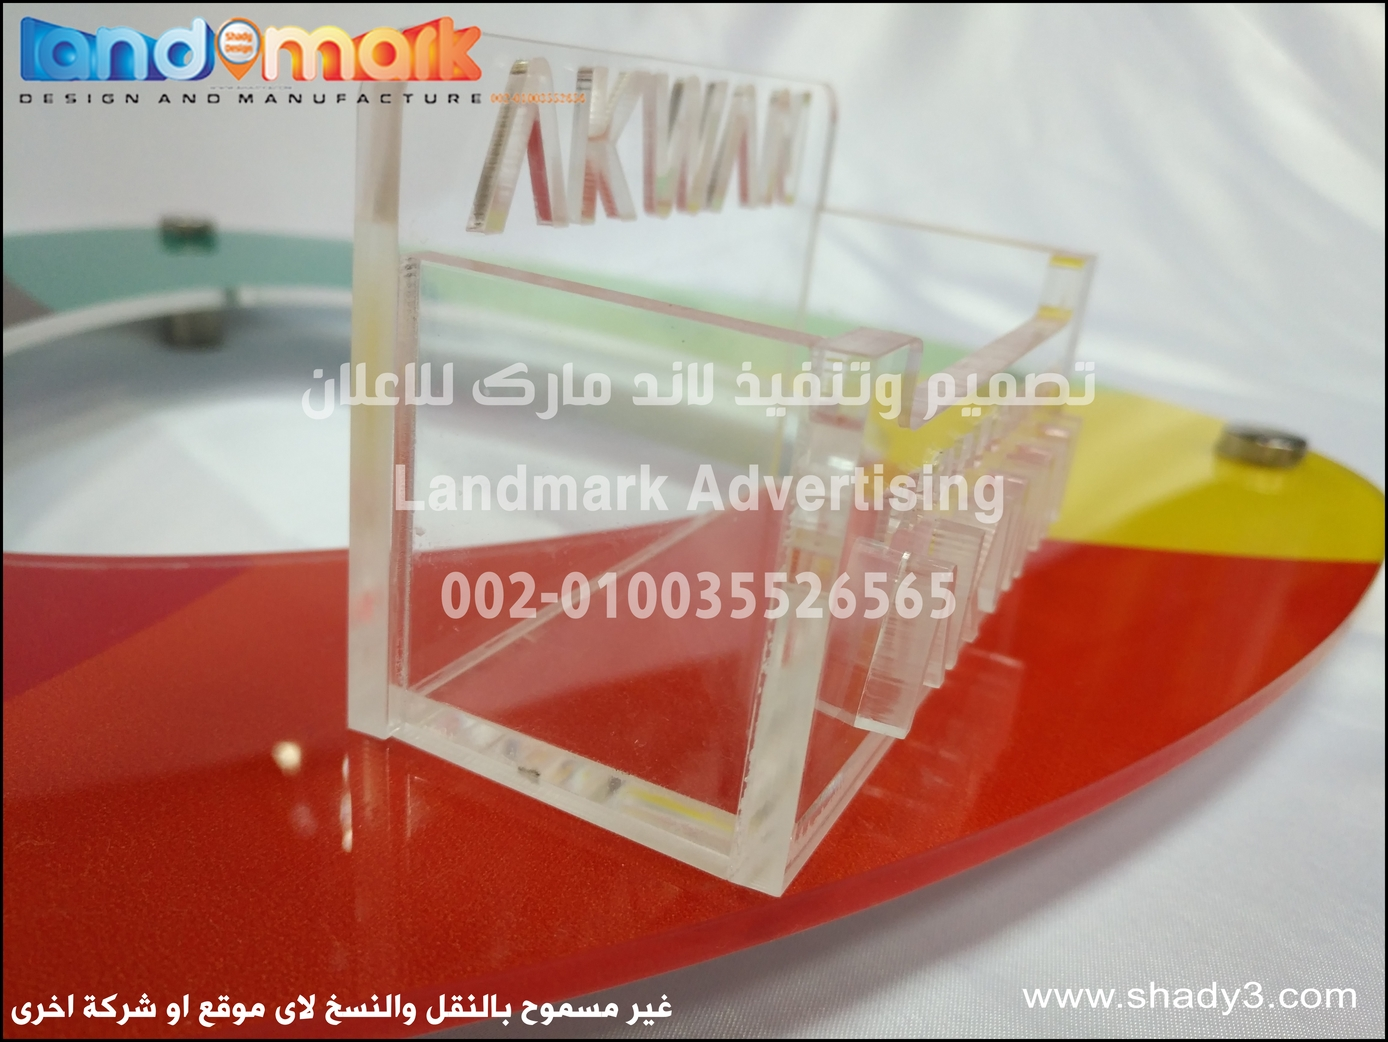 Acrylic Signs with full digital print لاند مارك للاعلان